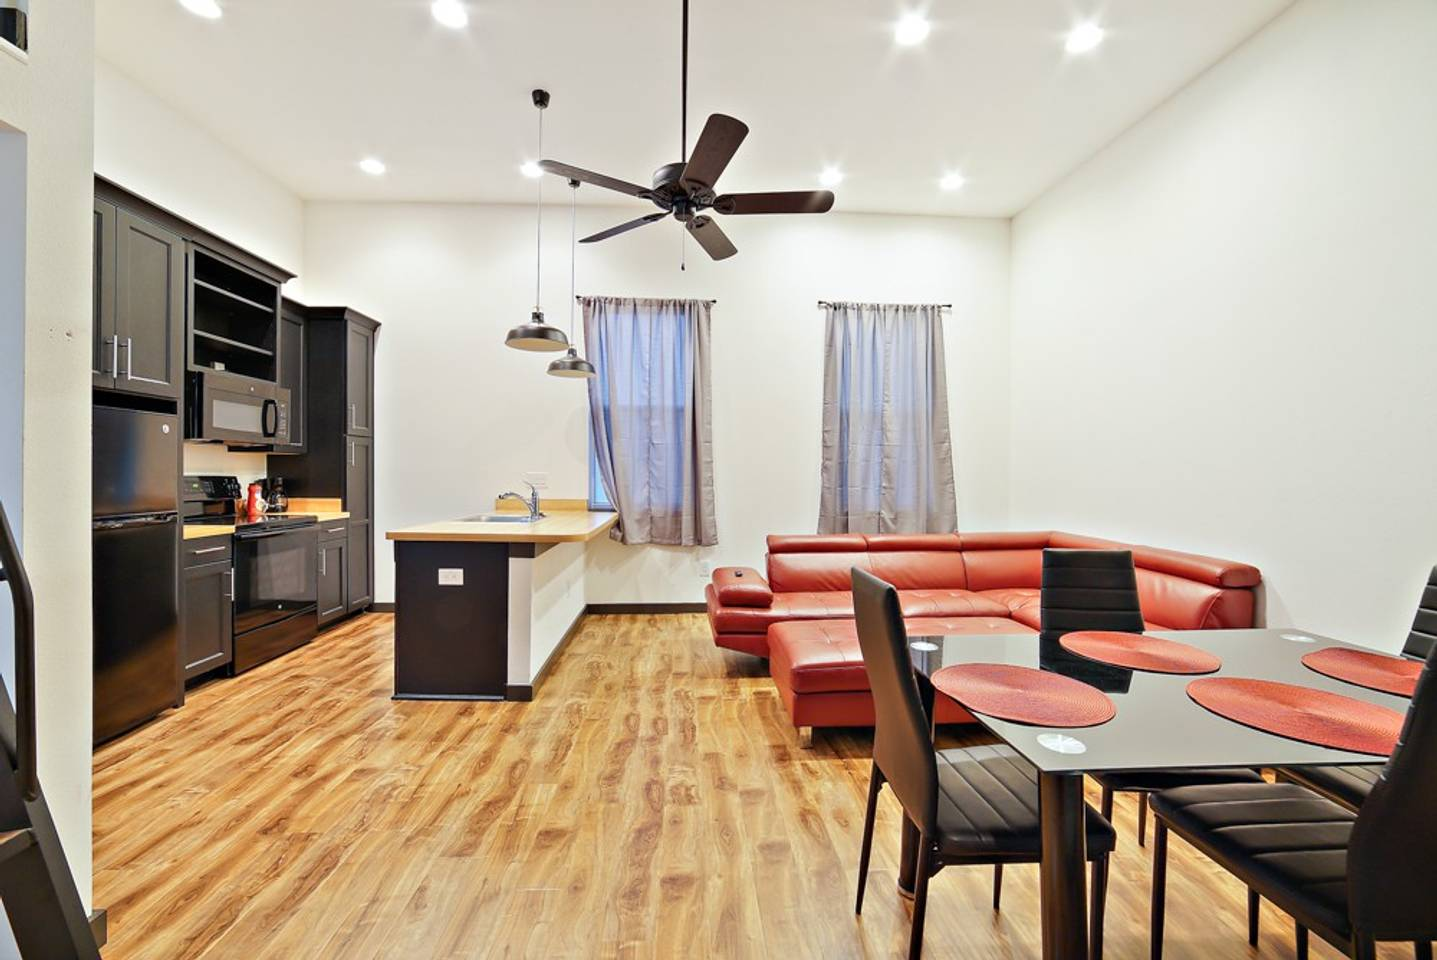 Loft Style Living in Downtown Tampa #206 photo 19011202